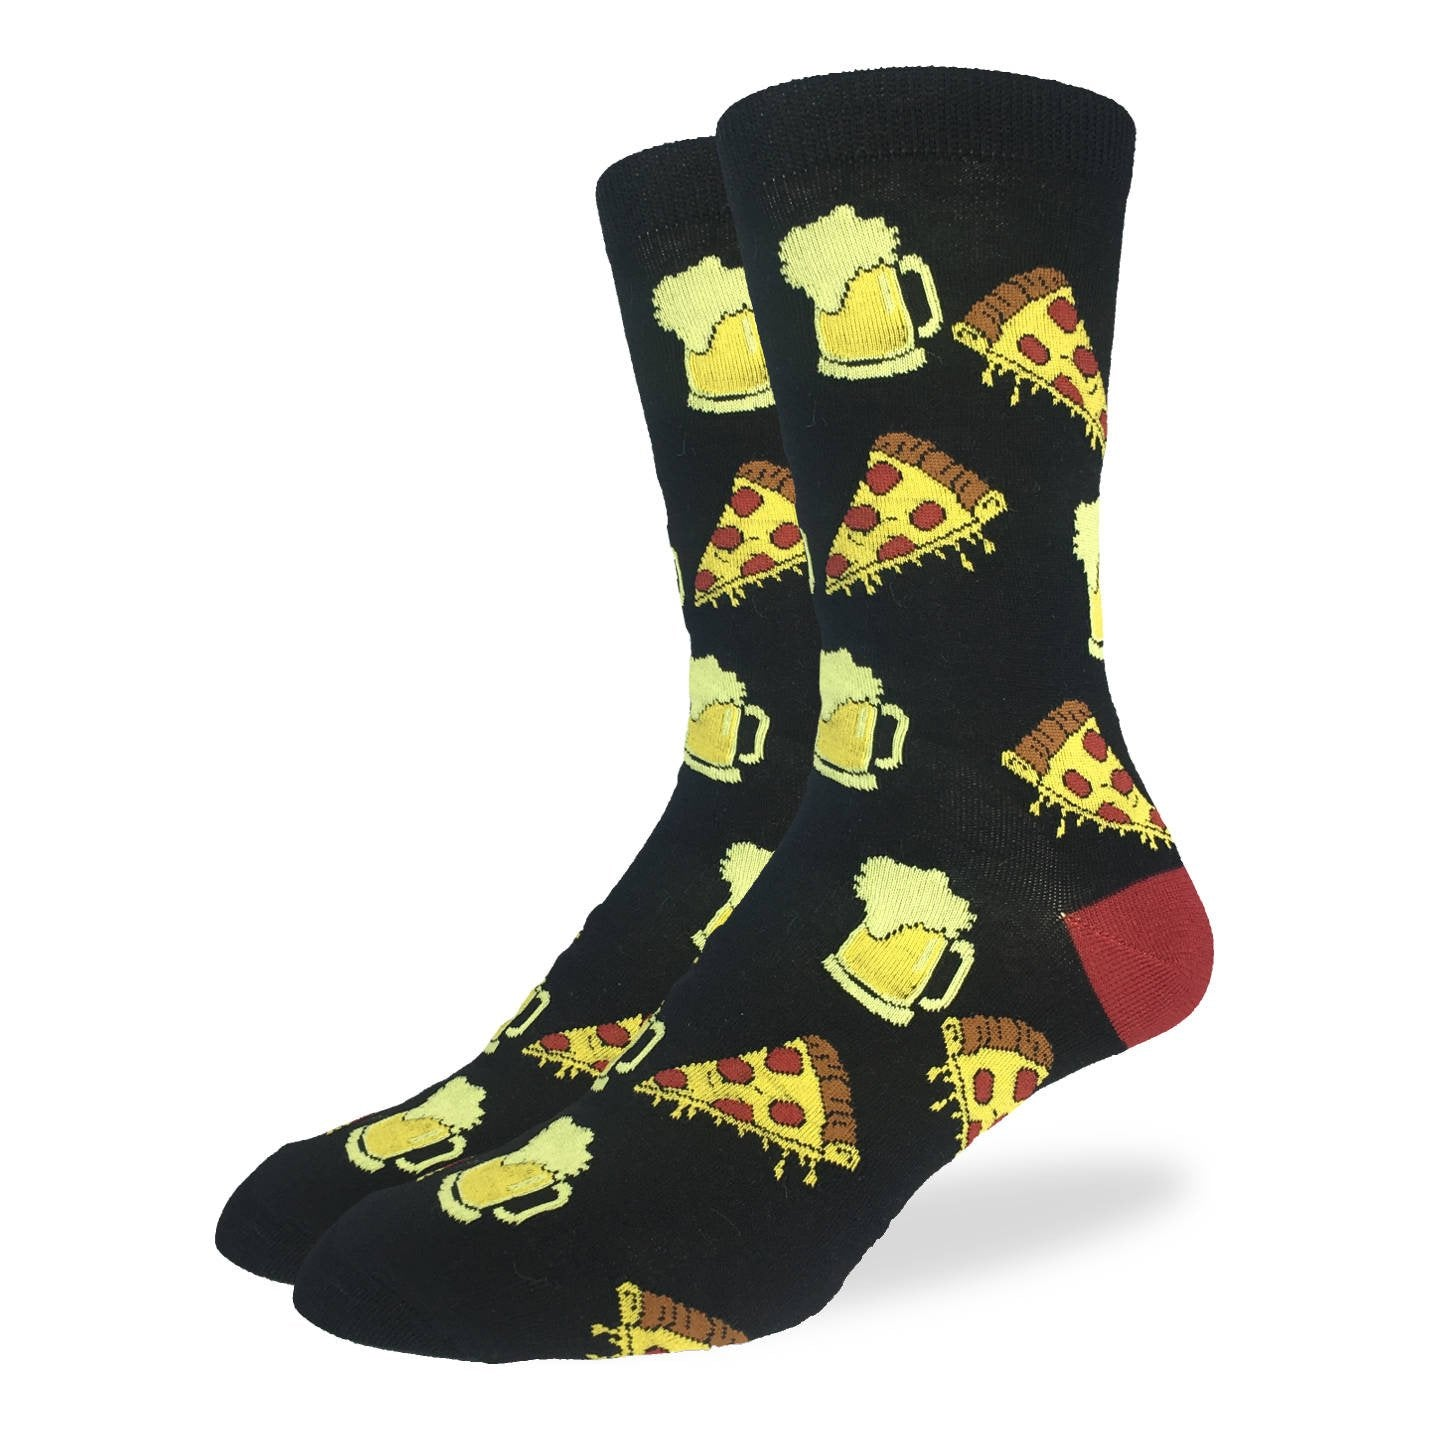 Men's King Size Pizza & Beer Socks - Good Luck Sock